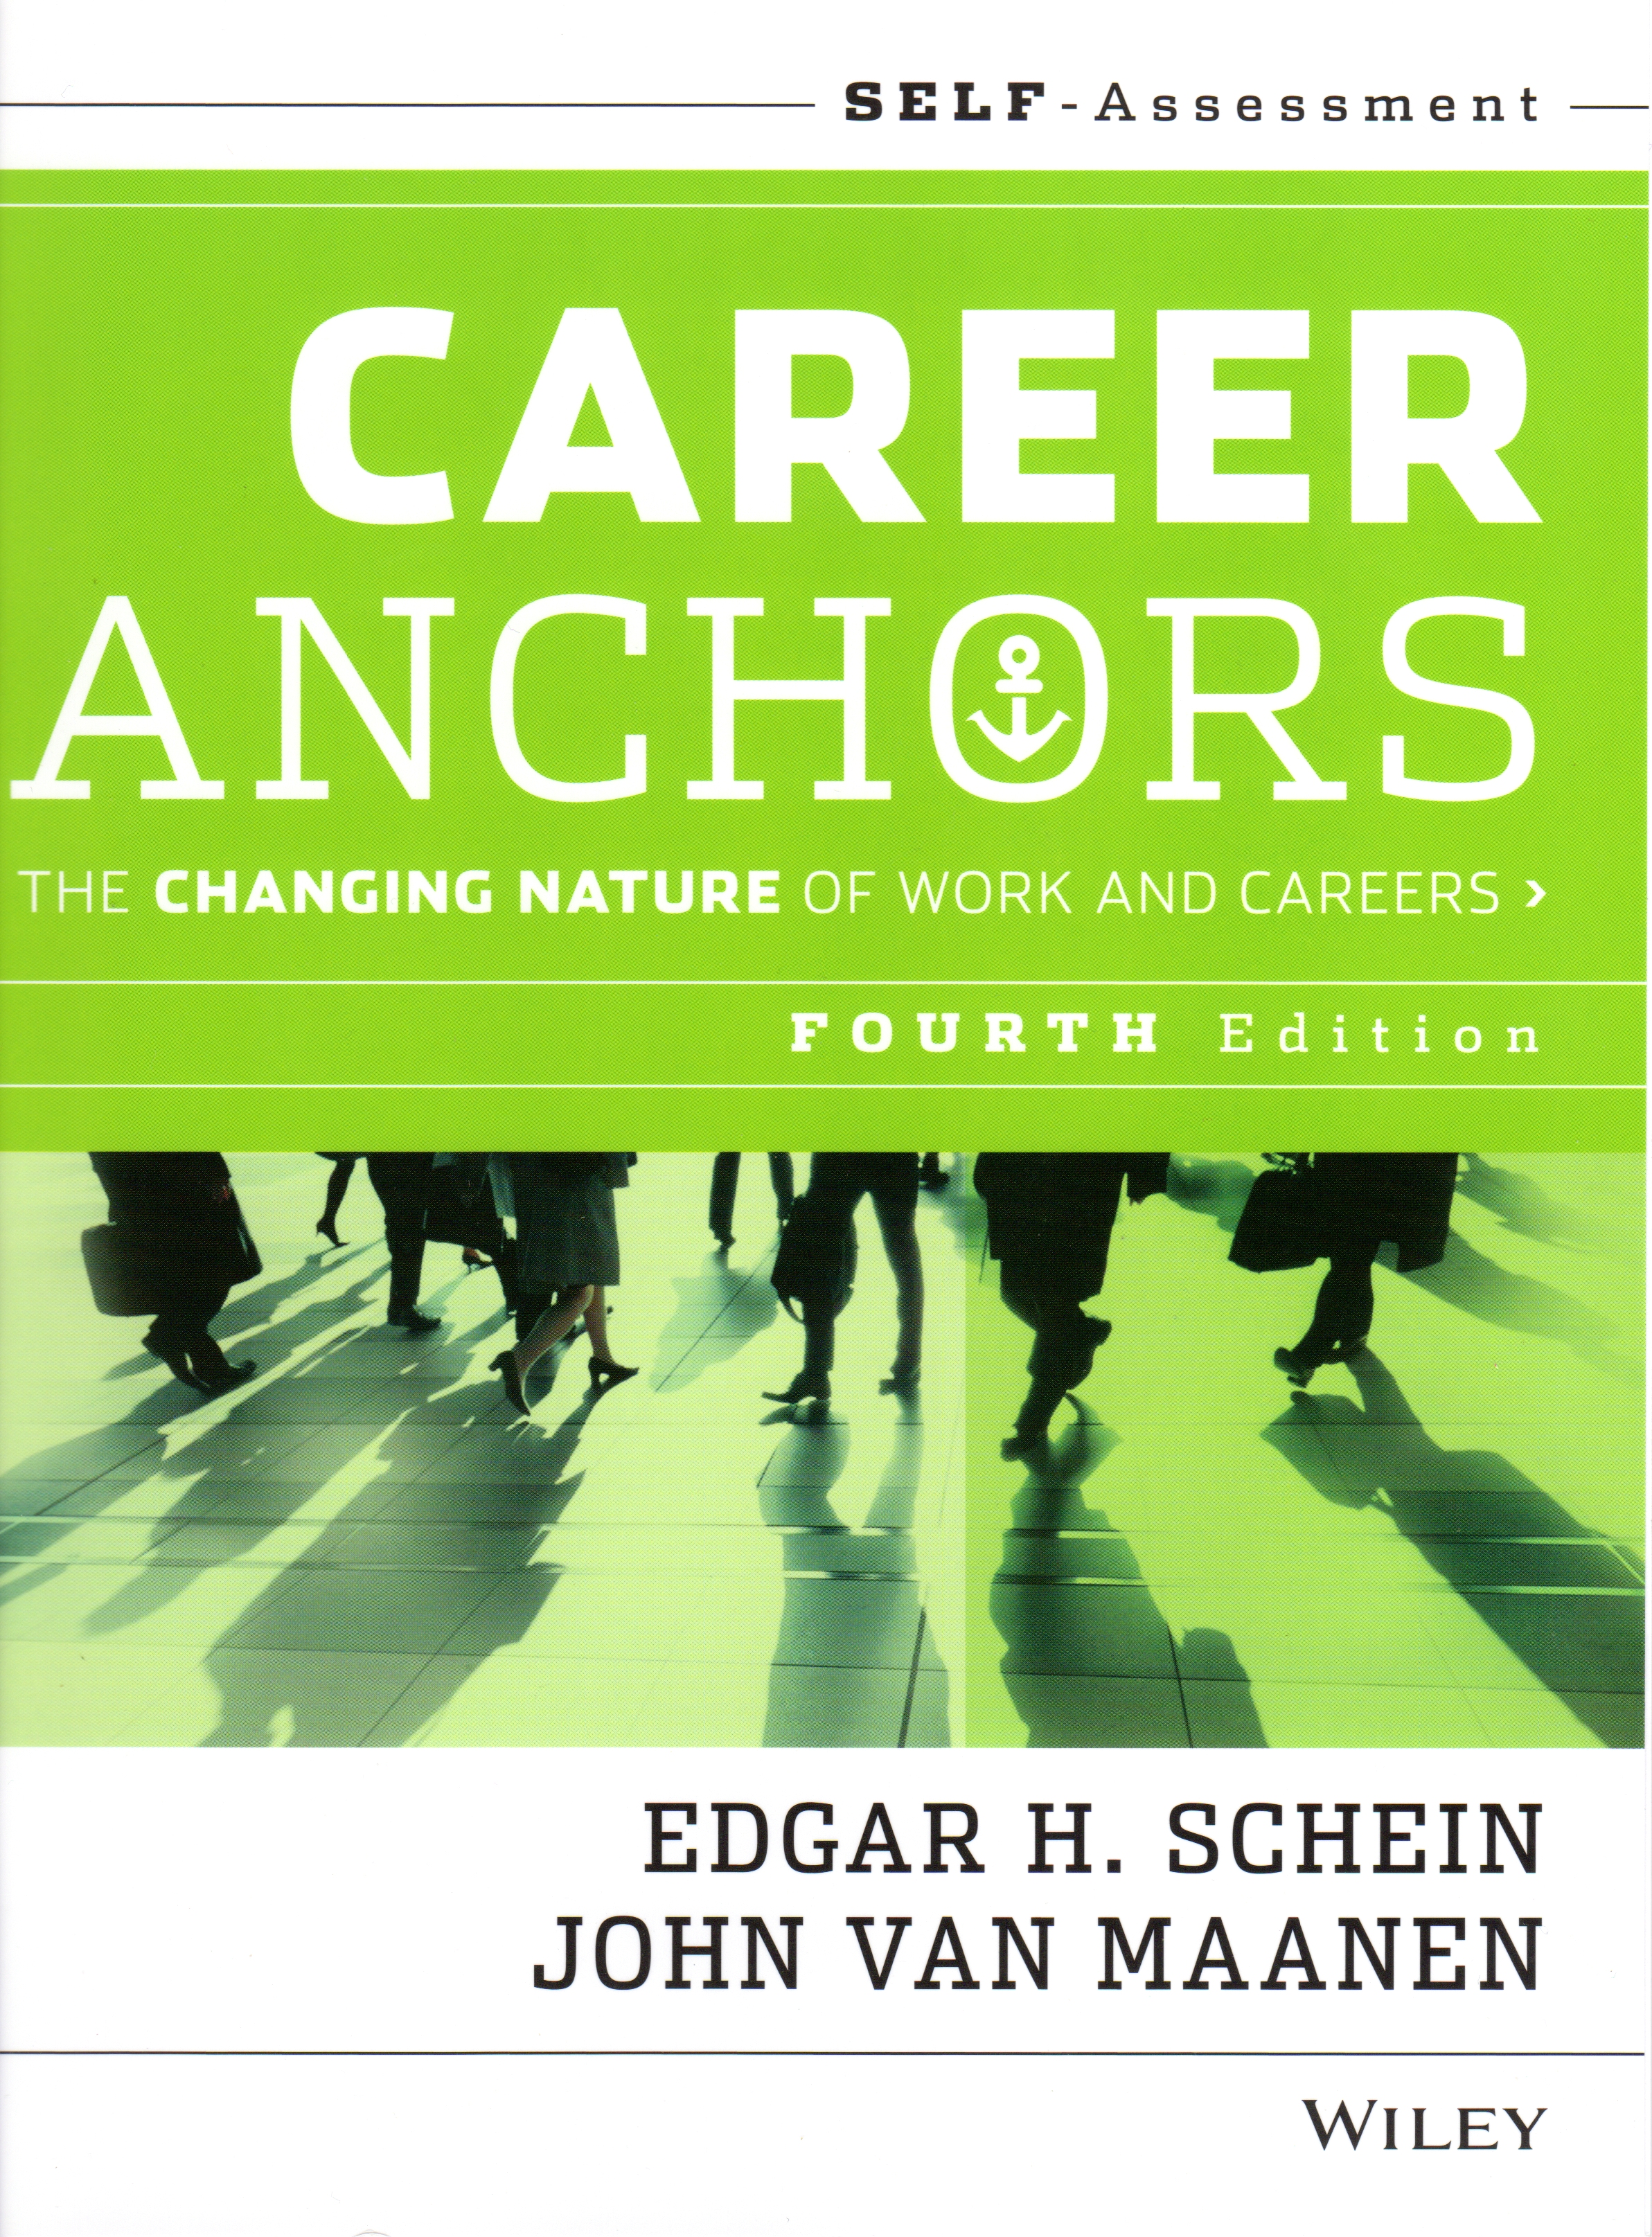 finding your career anchor tennie videler cambridge awise career anchors001